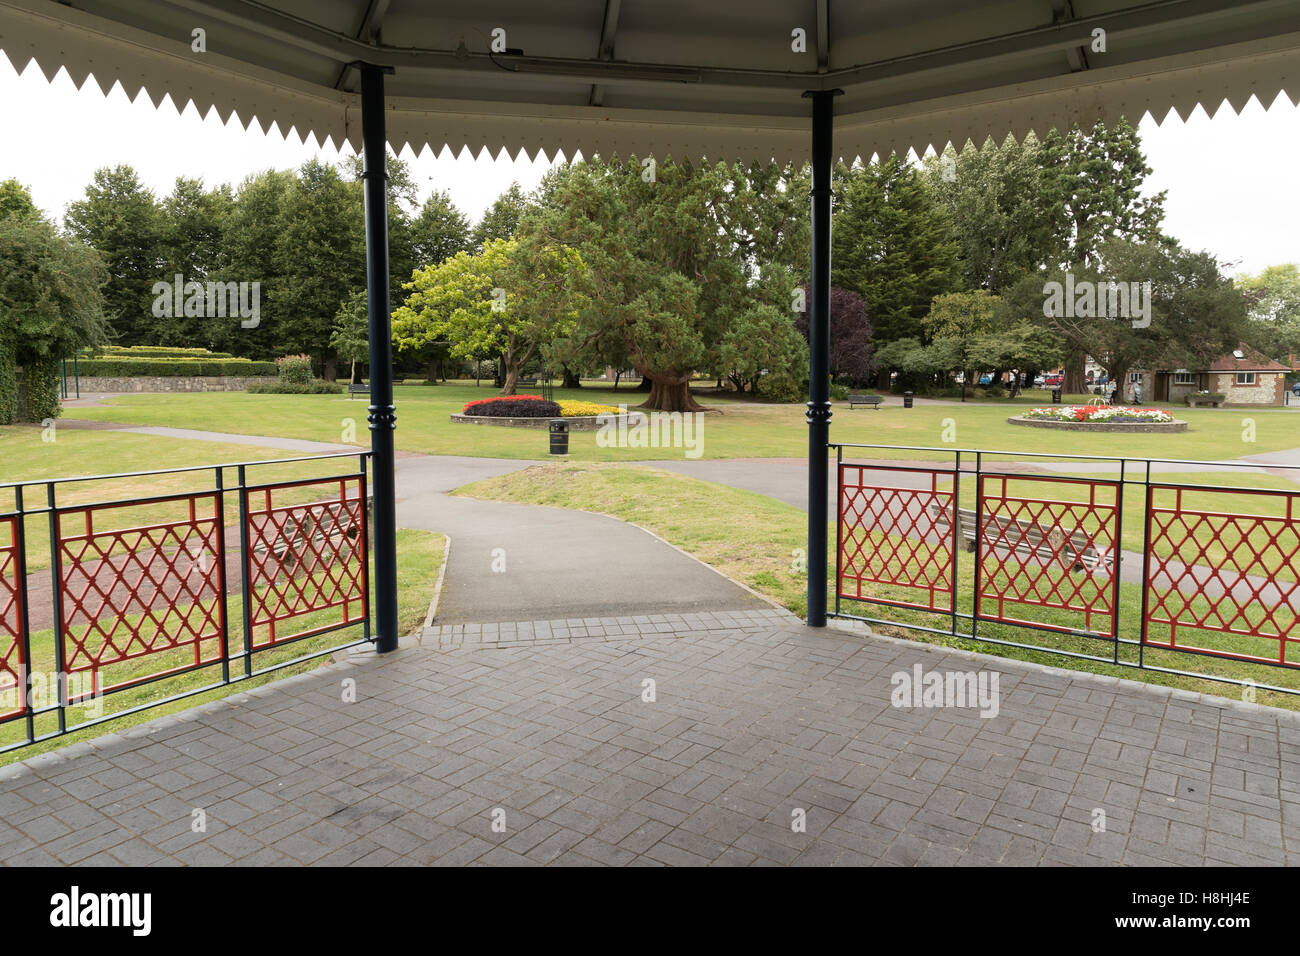 A view from inside the bandstand in Alton town park in Hampshire. Stock Photo